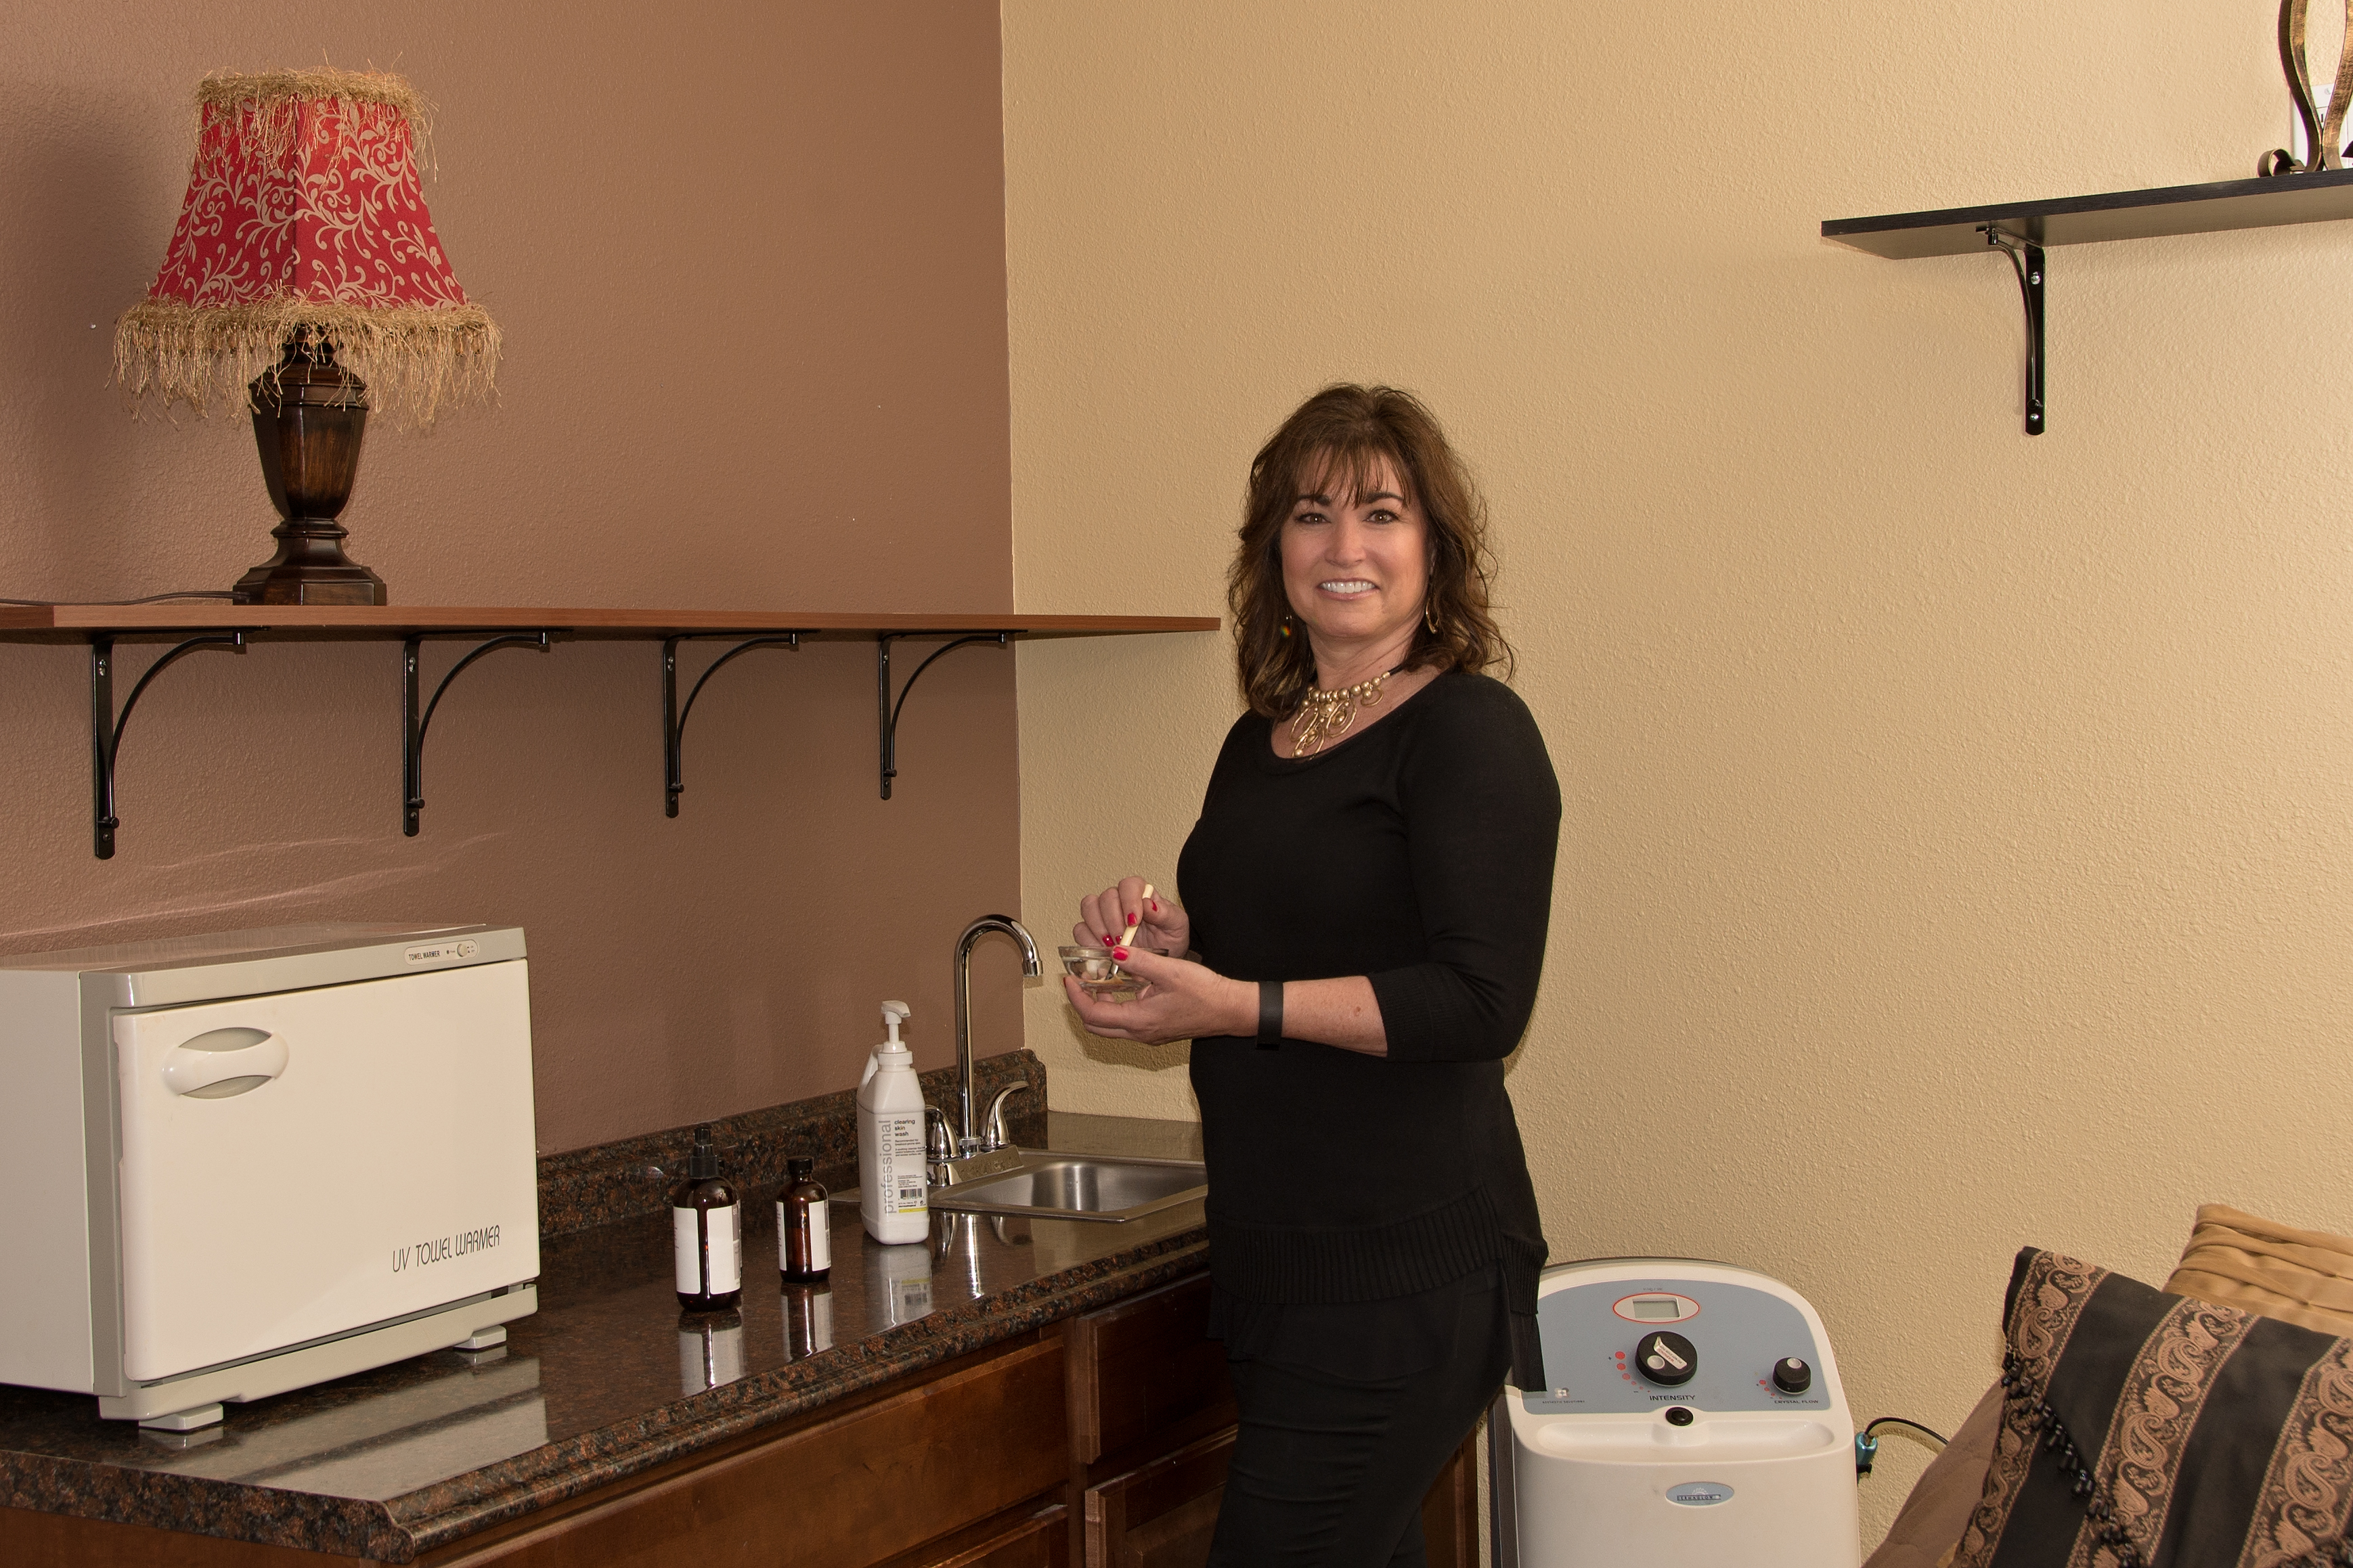 Kathleen Lunde - Esthetician at Salon Nevaeh in Littleton, CO